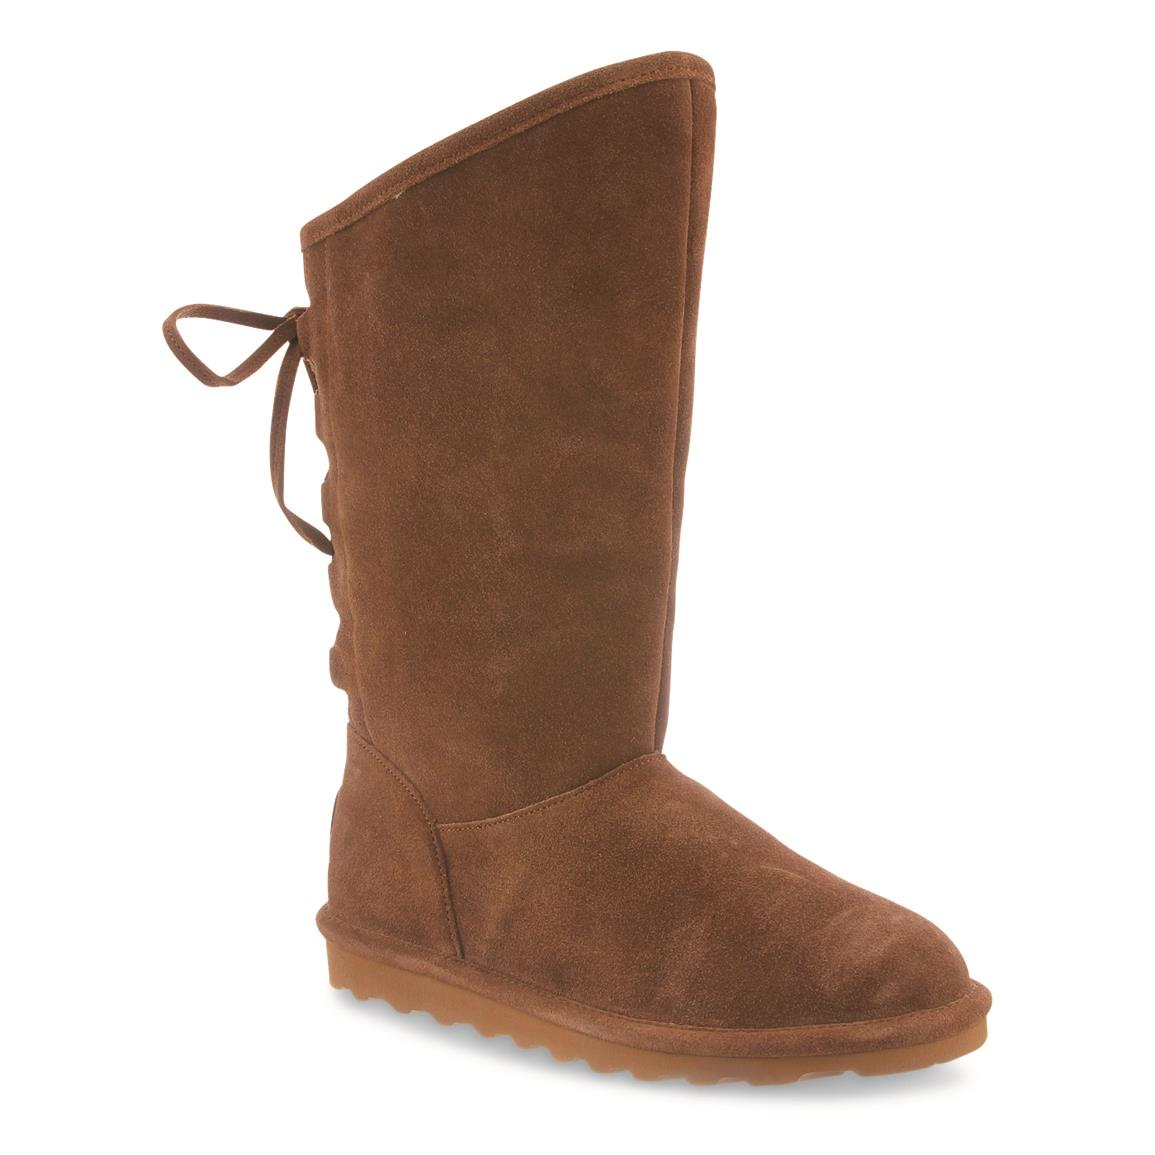 Bearpaw Women's Phylly Boots, Hickory